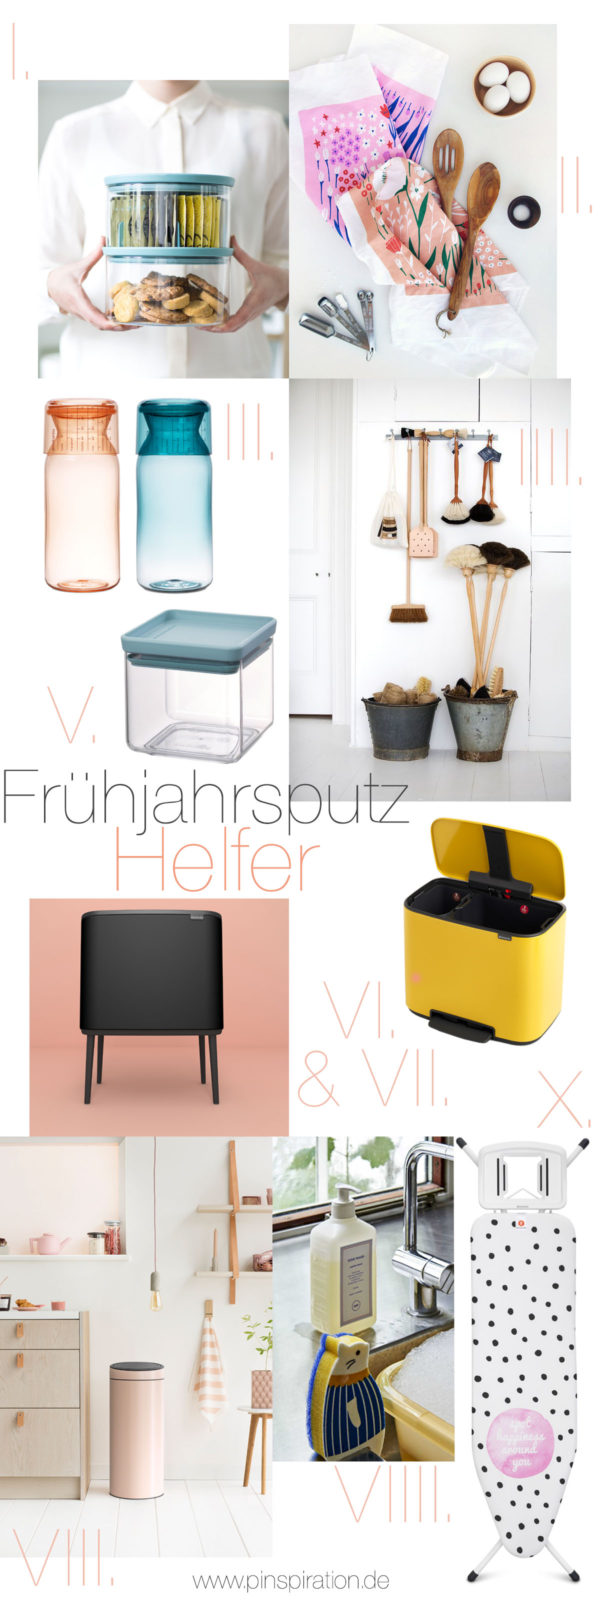 aufr umen ausmisten putzen ran an den fr hjahrsputz und. Black Bedroom Furniture Sets. Home Design Ideas